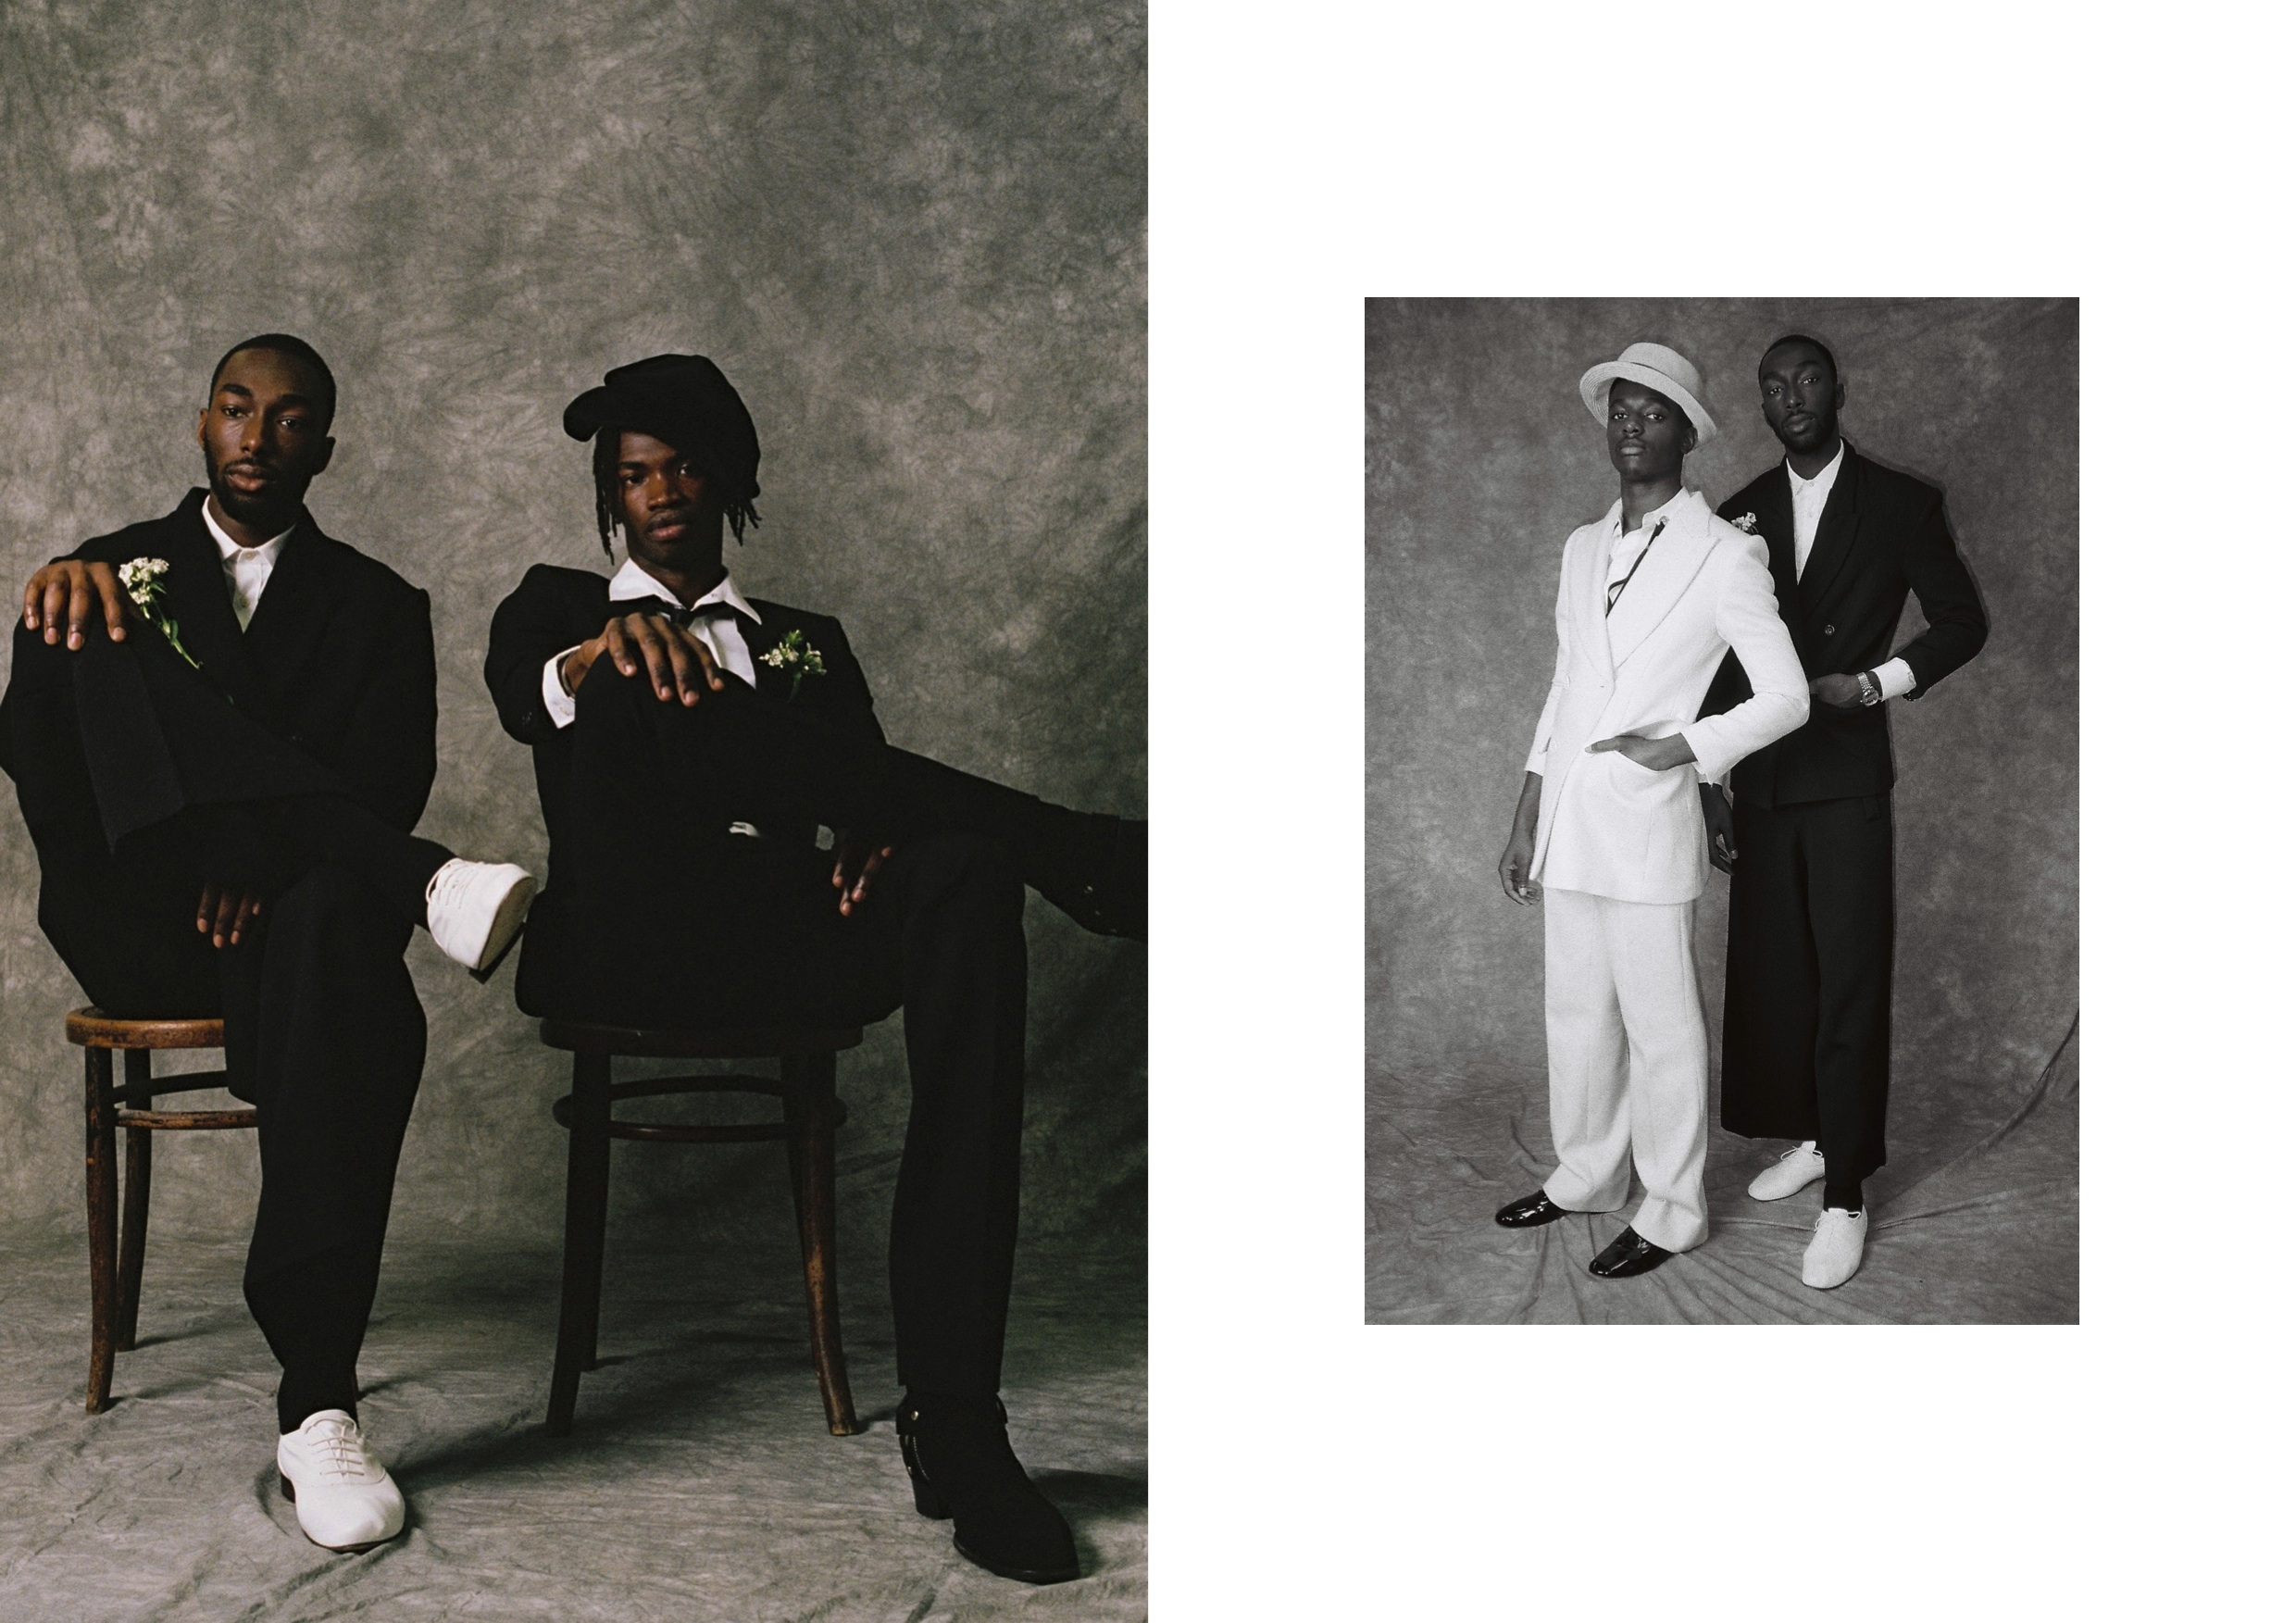 Left:  Keith wears   Trousers and Blazer by Andrew Biscara, Shirt by Hedi Slimane for Saint Laurent and Shoes by Repetto.   Lance wears   Trousers, Tie and Boots by Hedi Slimane for Saint Laurent, Shirt by Acne and Hat stylist's own.  Right: Kent wears   Trousers and Blazer by Abzal Issa Bekov, Shirt by Todd Lynn,  Shoes by Repetto and Hat stylist's own .  Keith wears  Watch stylist's own.